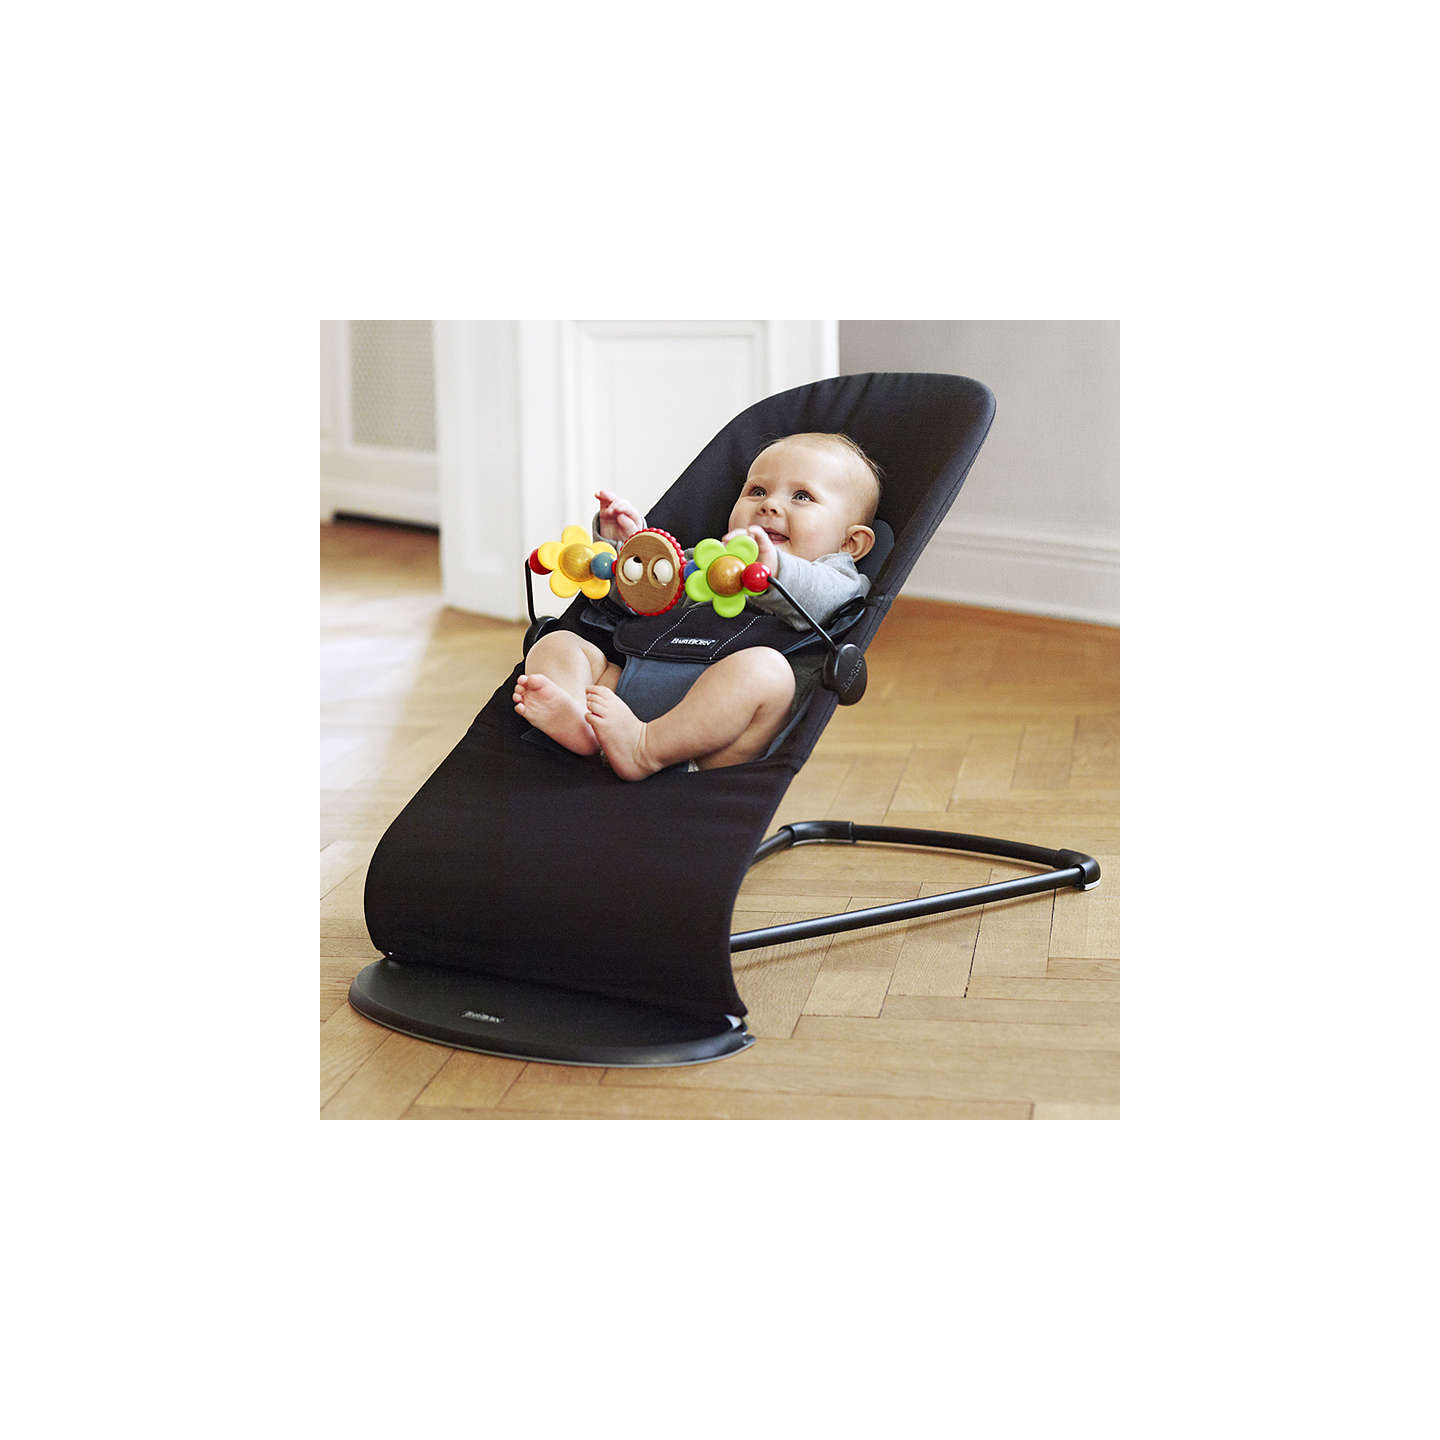 BuyBabyBjörn Bouncer Balance Soft, Black/Grey Online at johnlewis.com